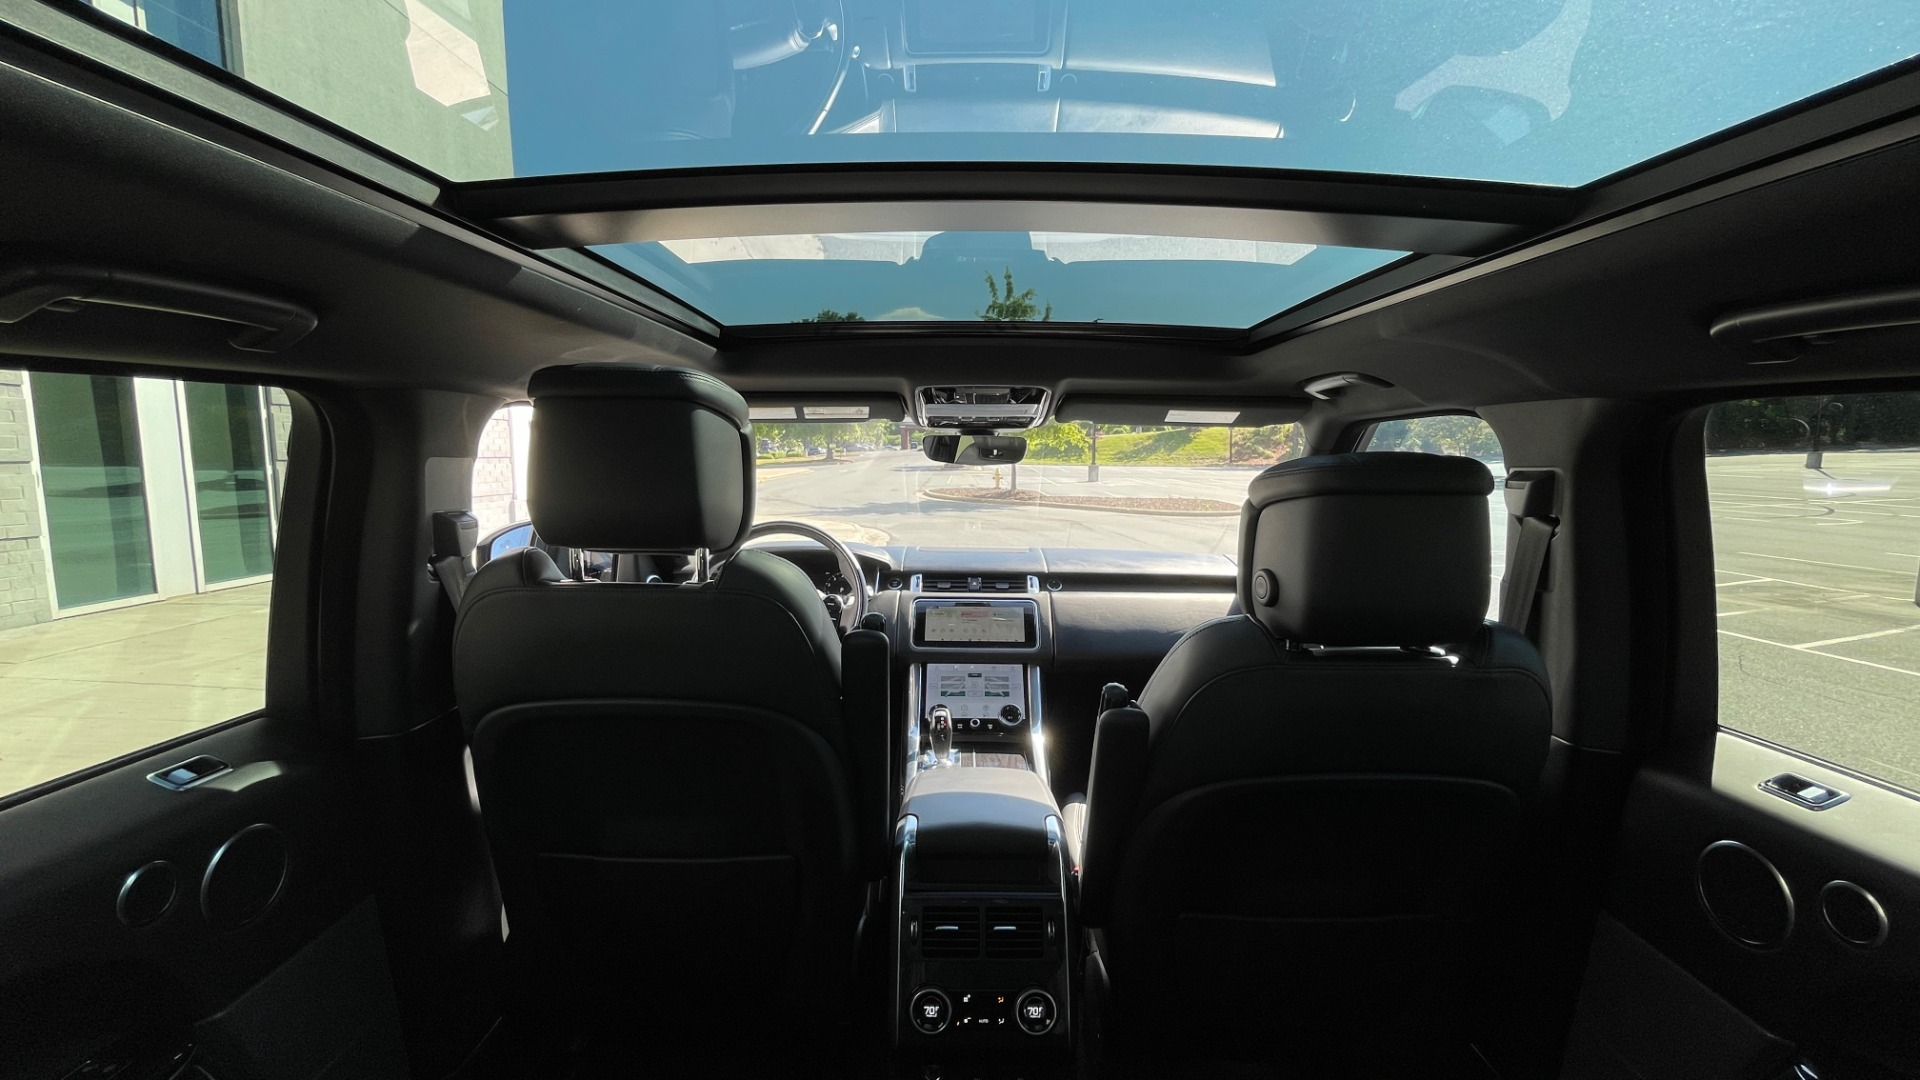 Used 2019 Land Rover RANGE ROVER SPORT HSE DYNAMIC / 3.0L SC V6 / 8-SPD / APPLE / NAV / SUNROOF / REARVIEW for sale Sold at Formula Imports in Charlotte NC 28227 74